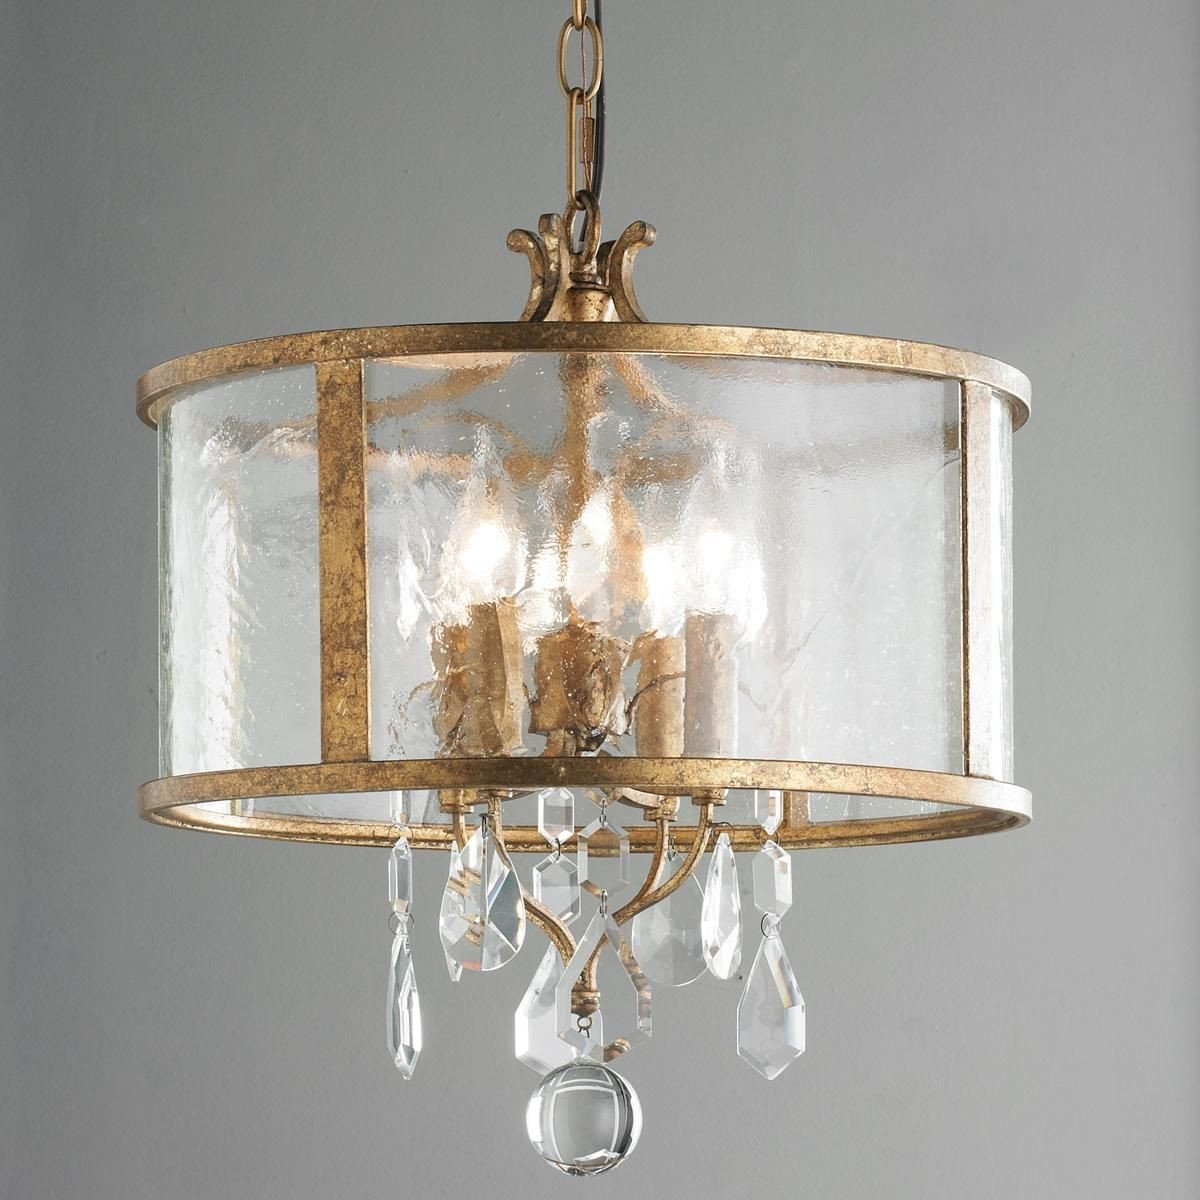 Small Chandeliers for Bedroom Awesome Vintage Modern Crystal Mini Chandelier